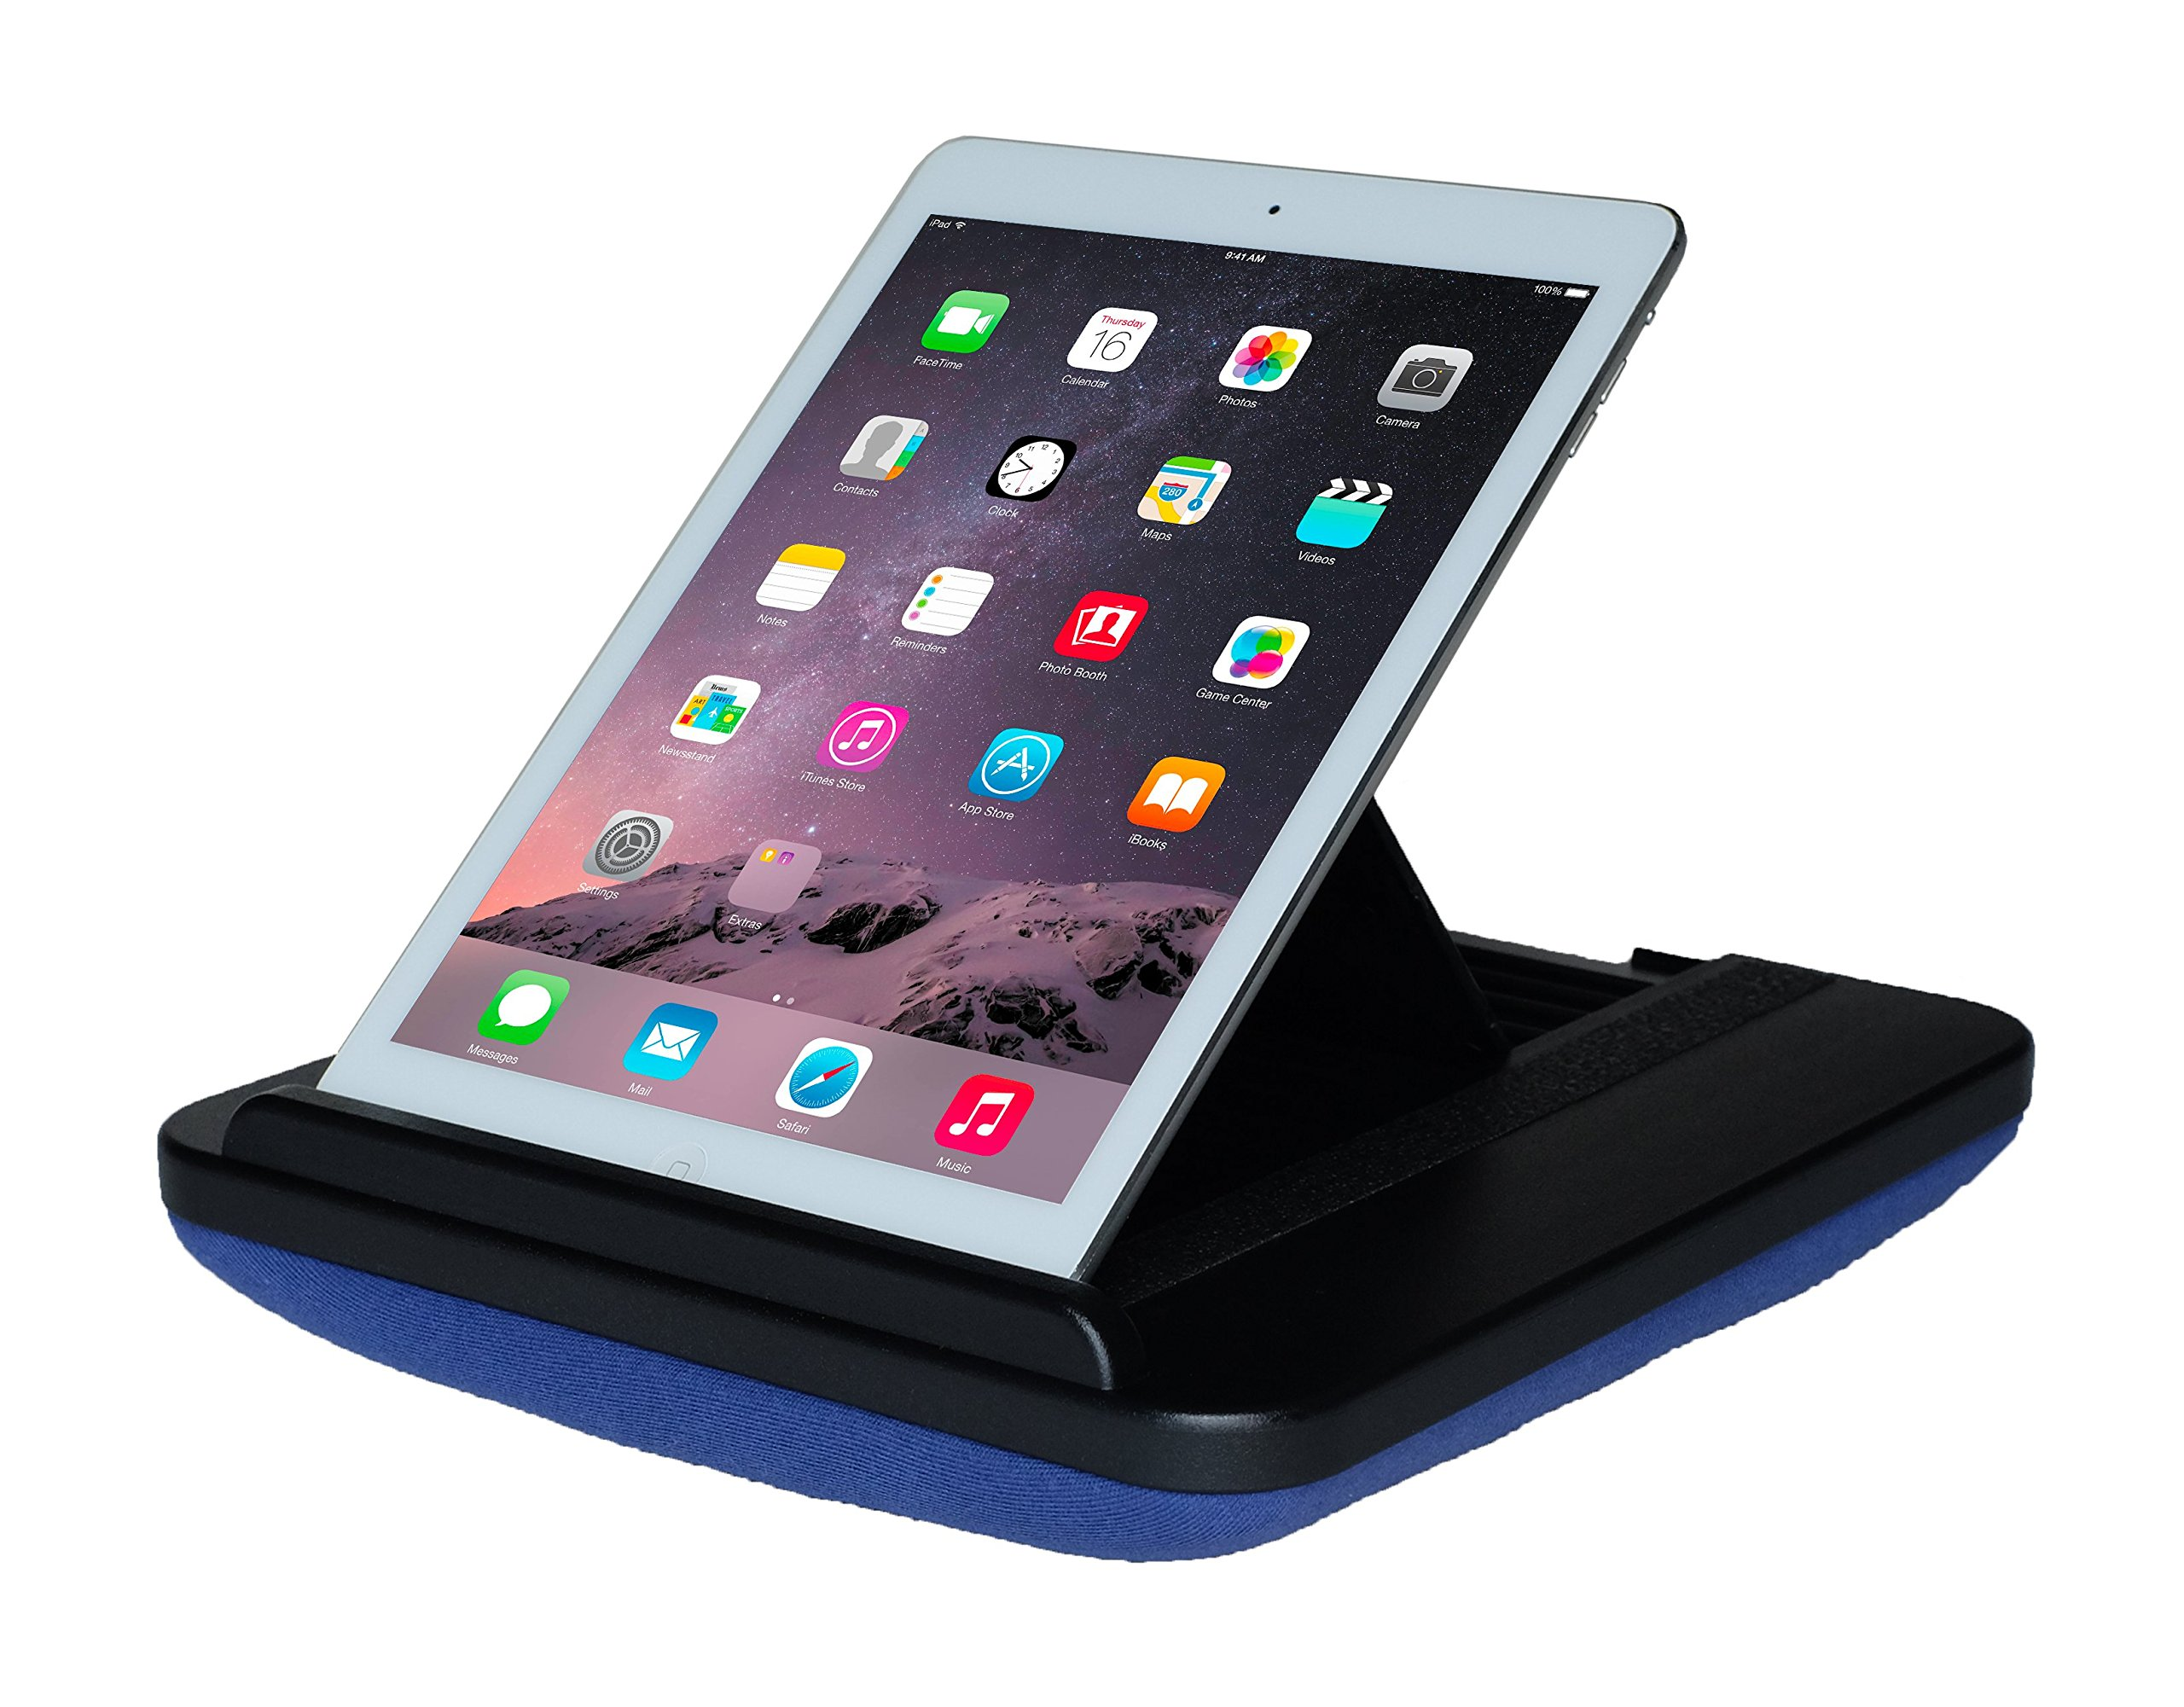 Prop 'n Go Slim - iPad Pillow with Adjustable Angle Control for iPad Air, iPad Mini, iPad Pro, iPhone, Tablets, eReaders, and More (Blue)